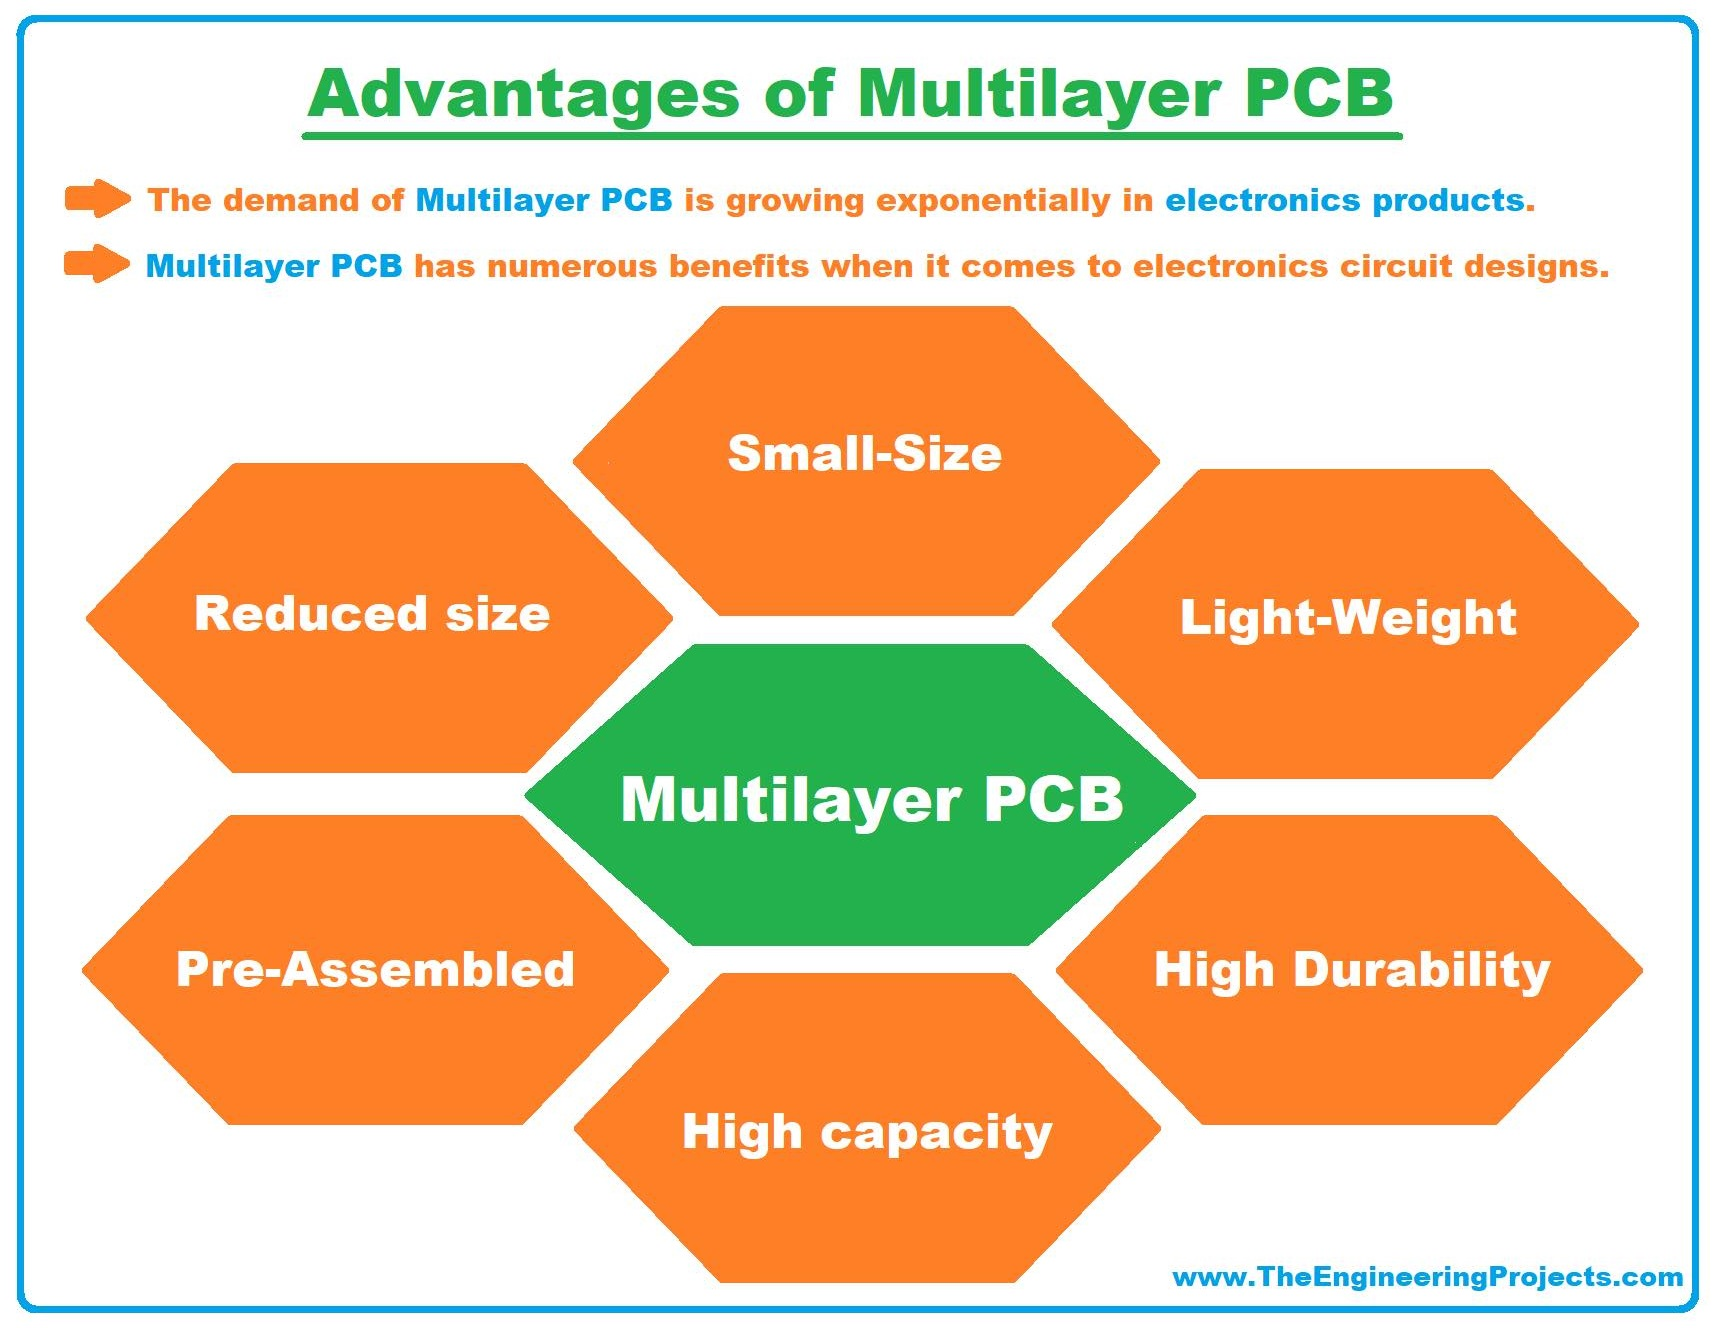 Multilayer PCB, what is Multilayer PCB, Multilayer PCB basics, Multilayer PCB advantages, Multilayer PCB applications, advantages of Multilayer PCB, examples of multilayer pcb